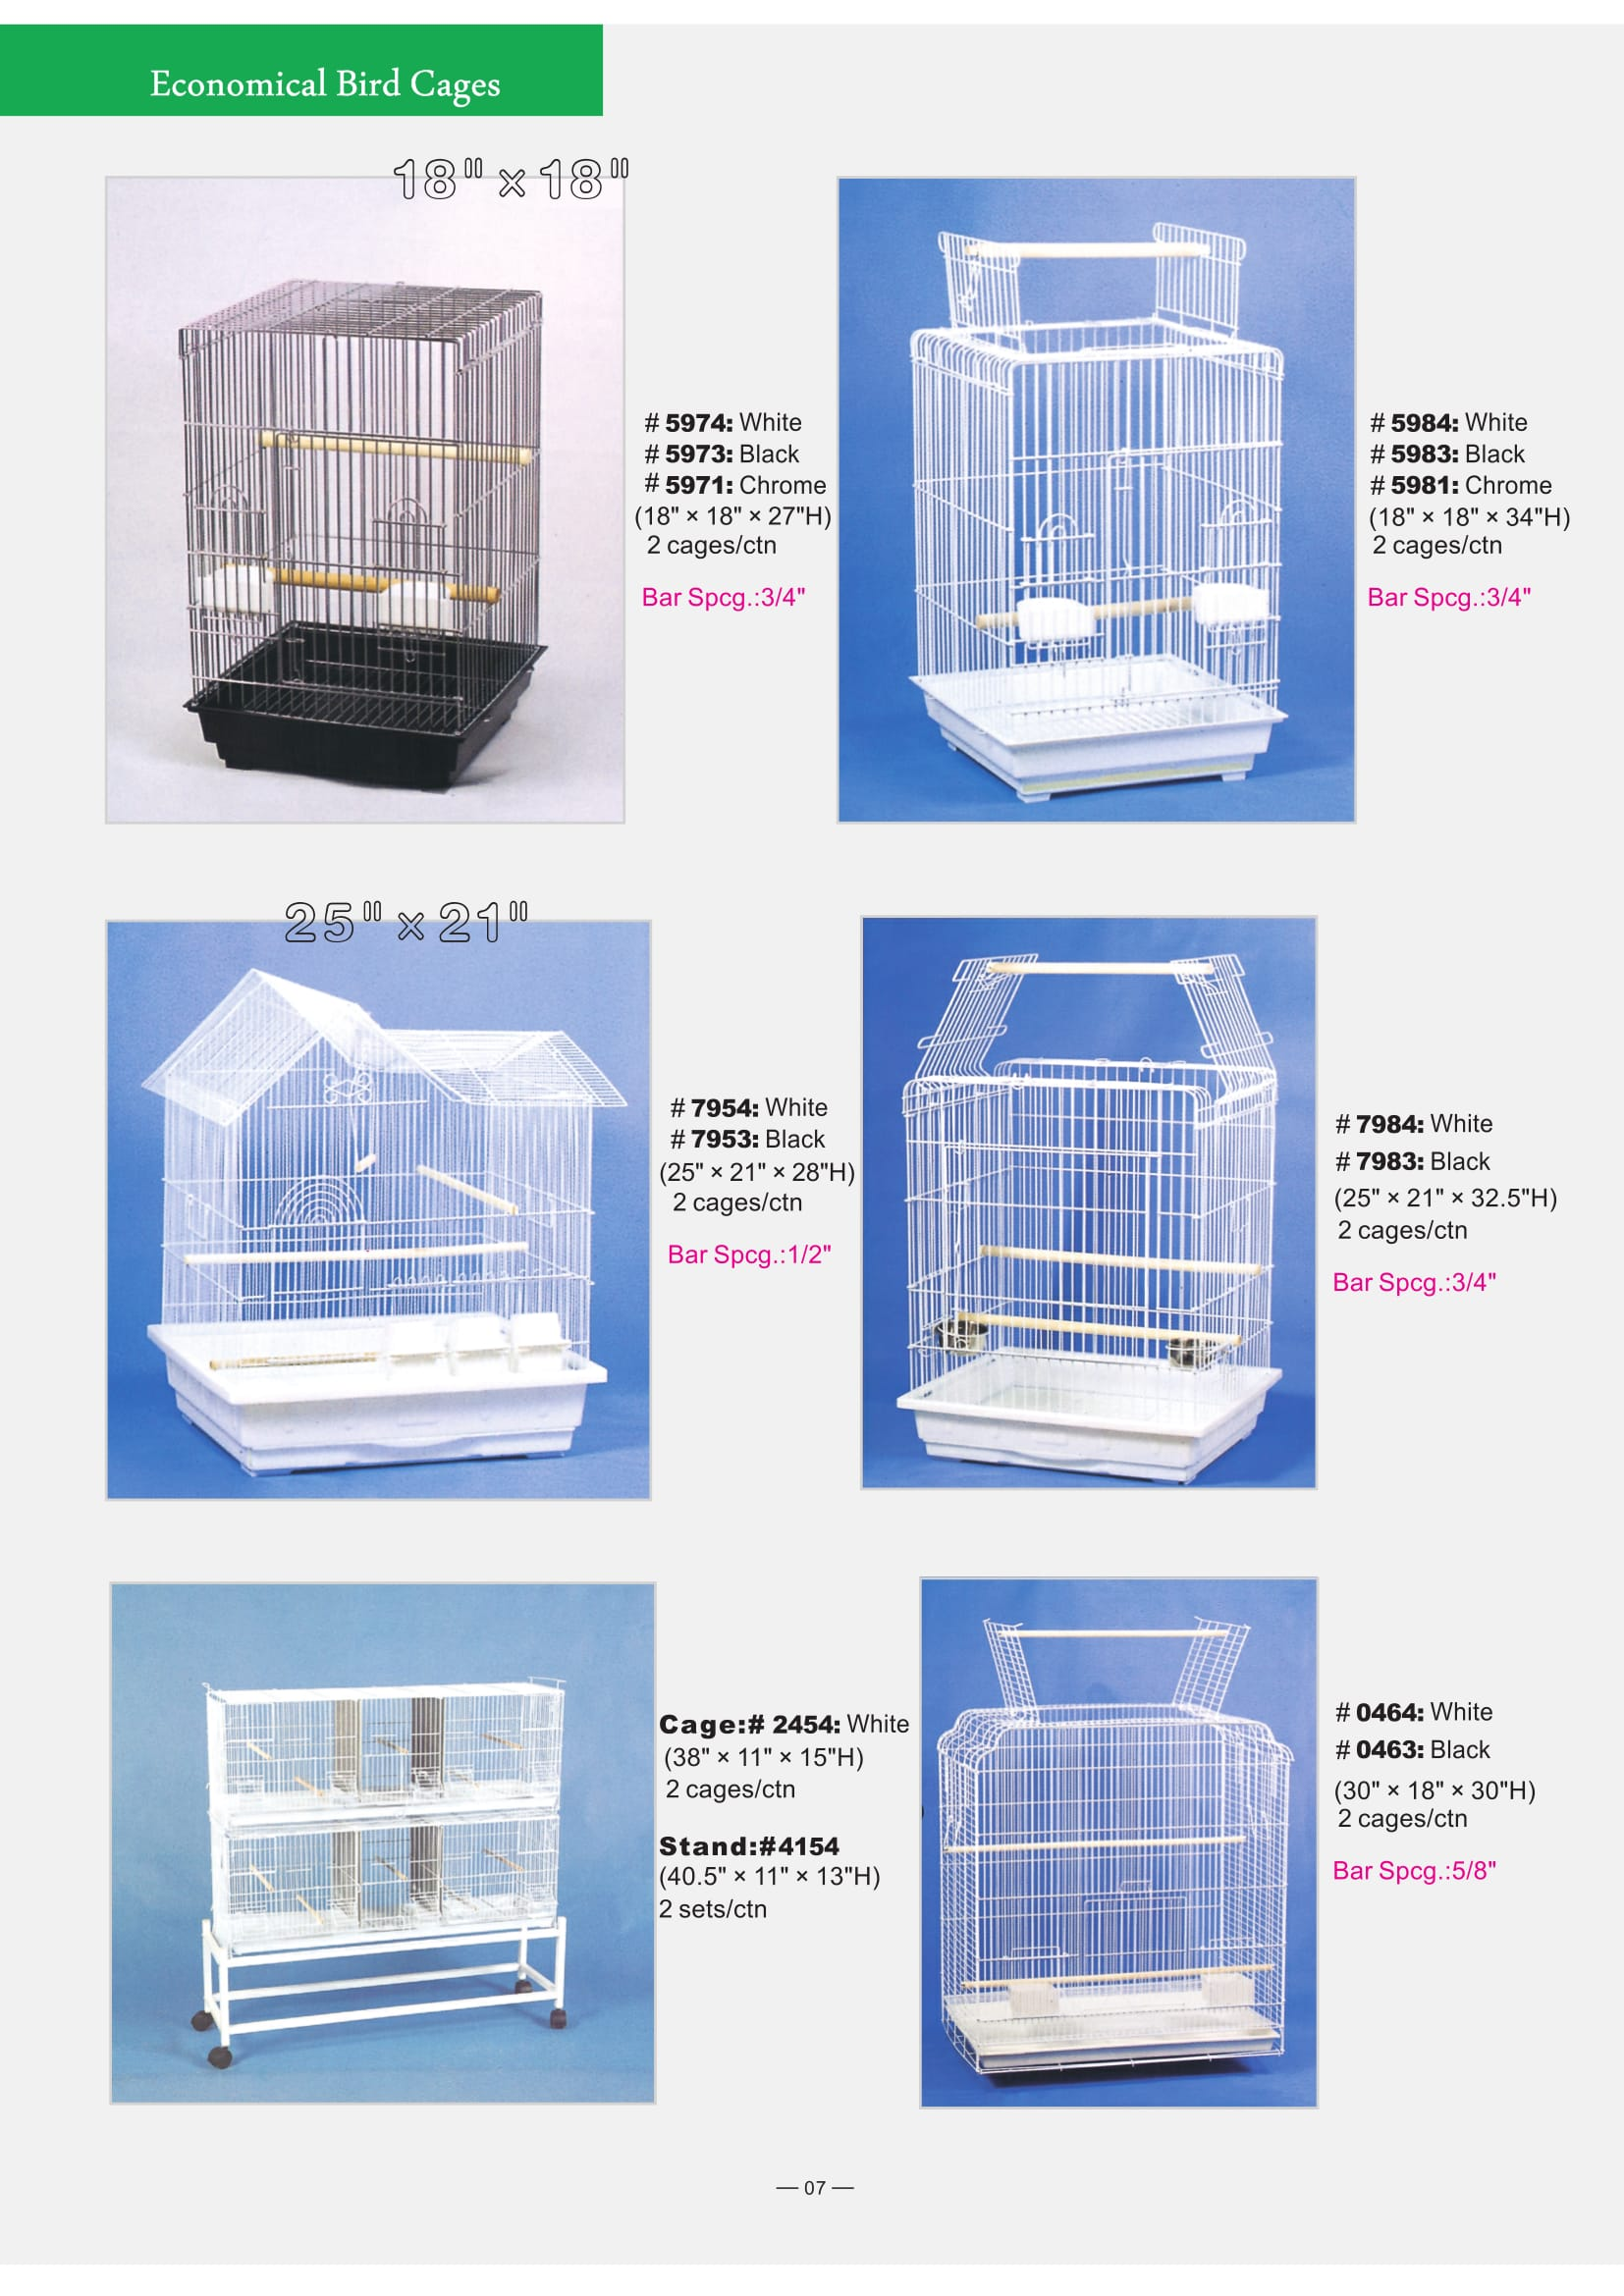 2. Economical Bird Cages part 2-4